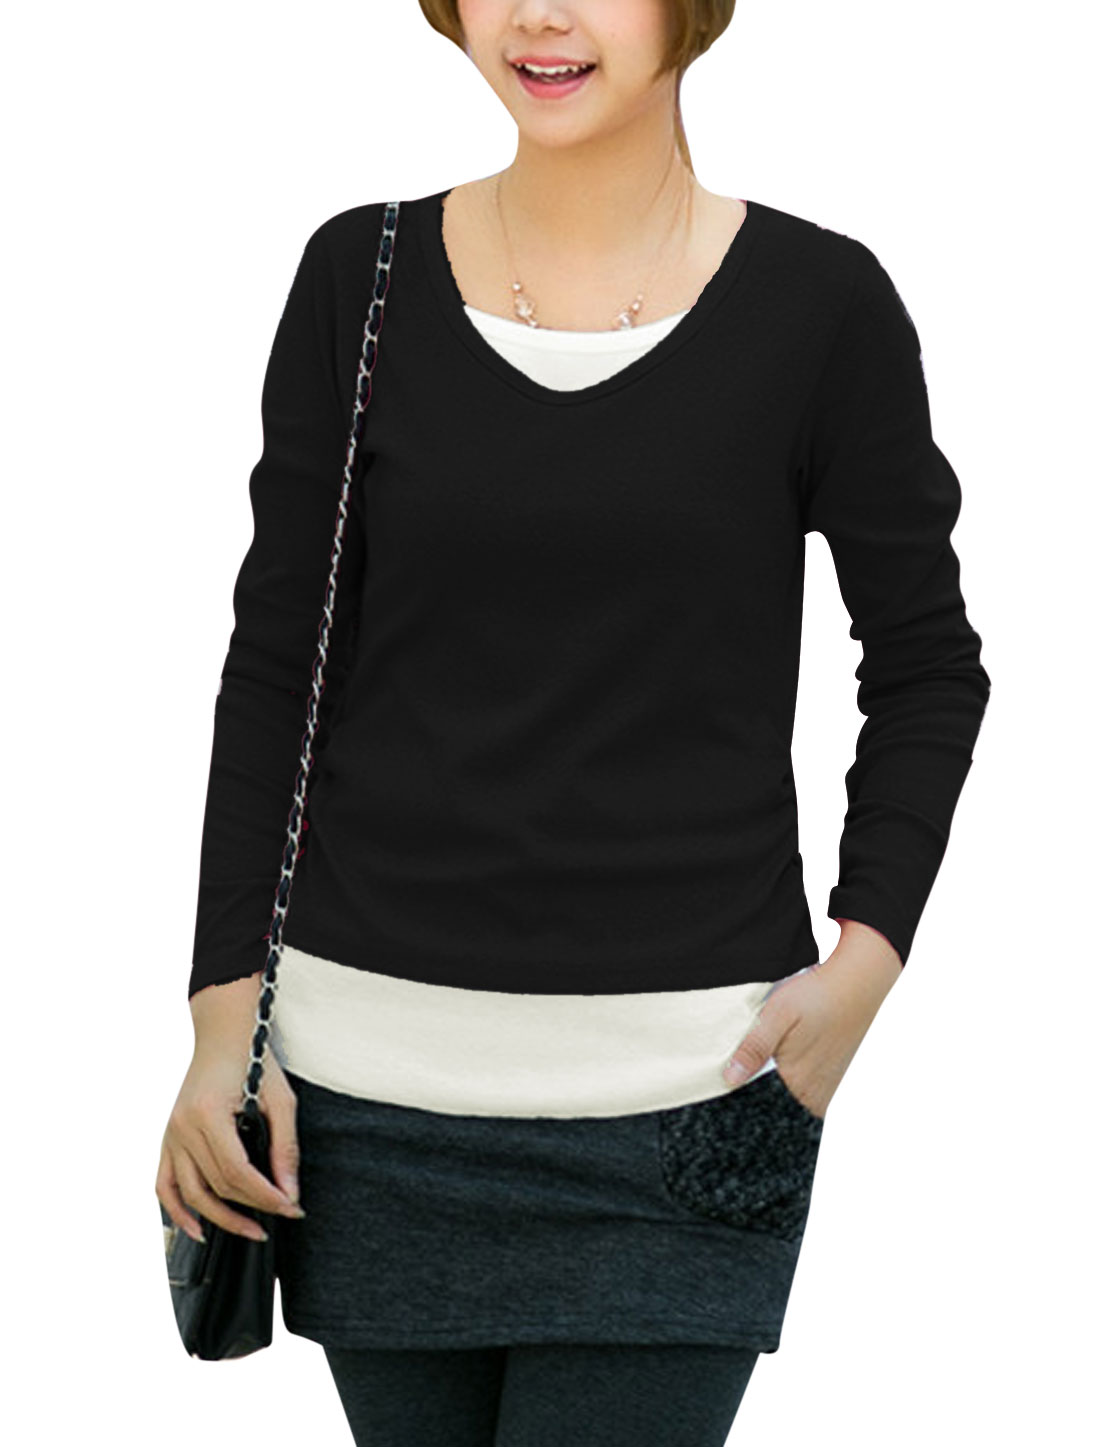 Ladies Round Neck Long Sleeve Panel Tee Shirt Black S